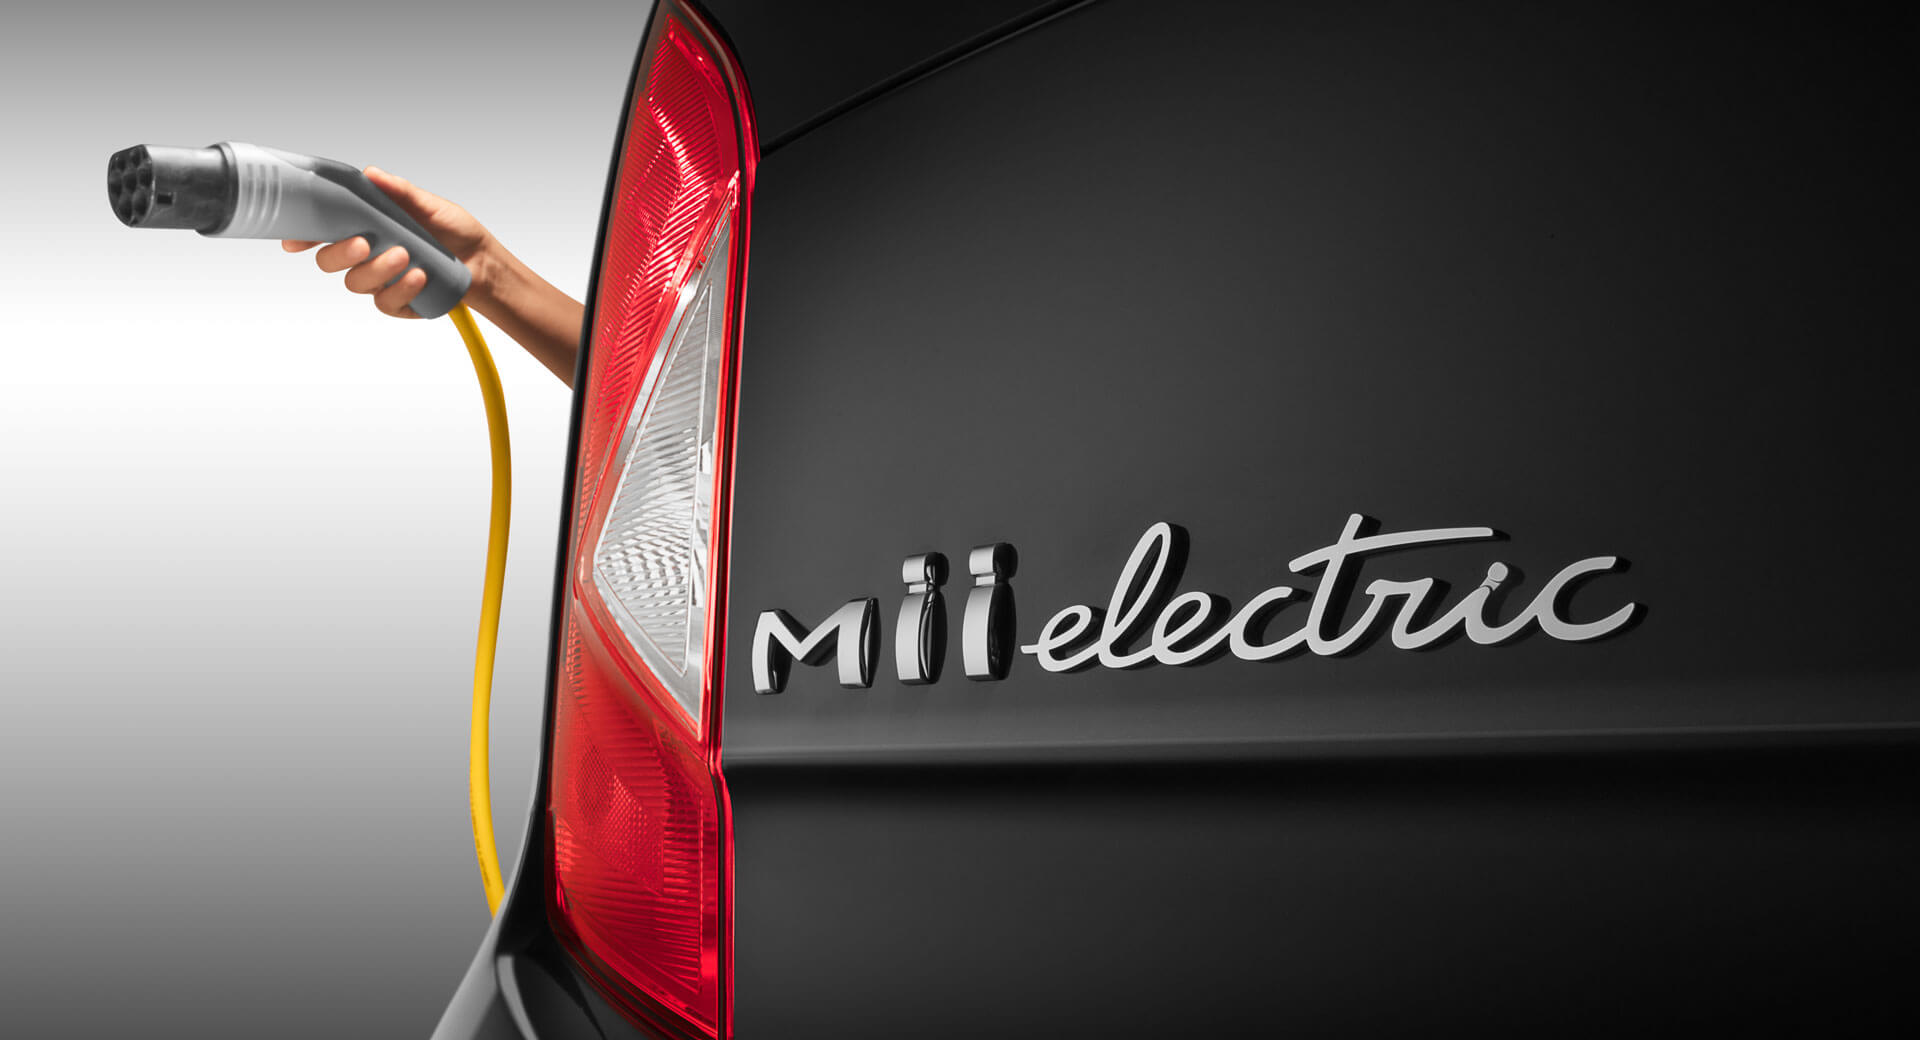 Seat Mii Electric Teased As The Brand's First-Ever EV